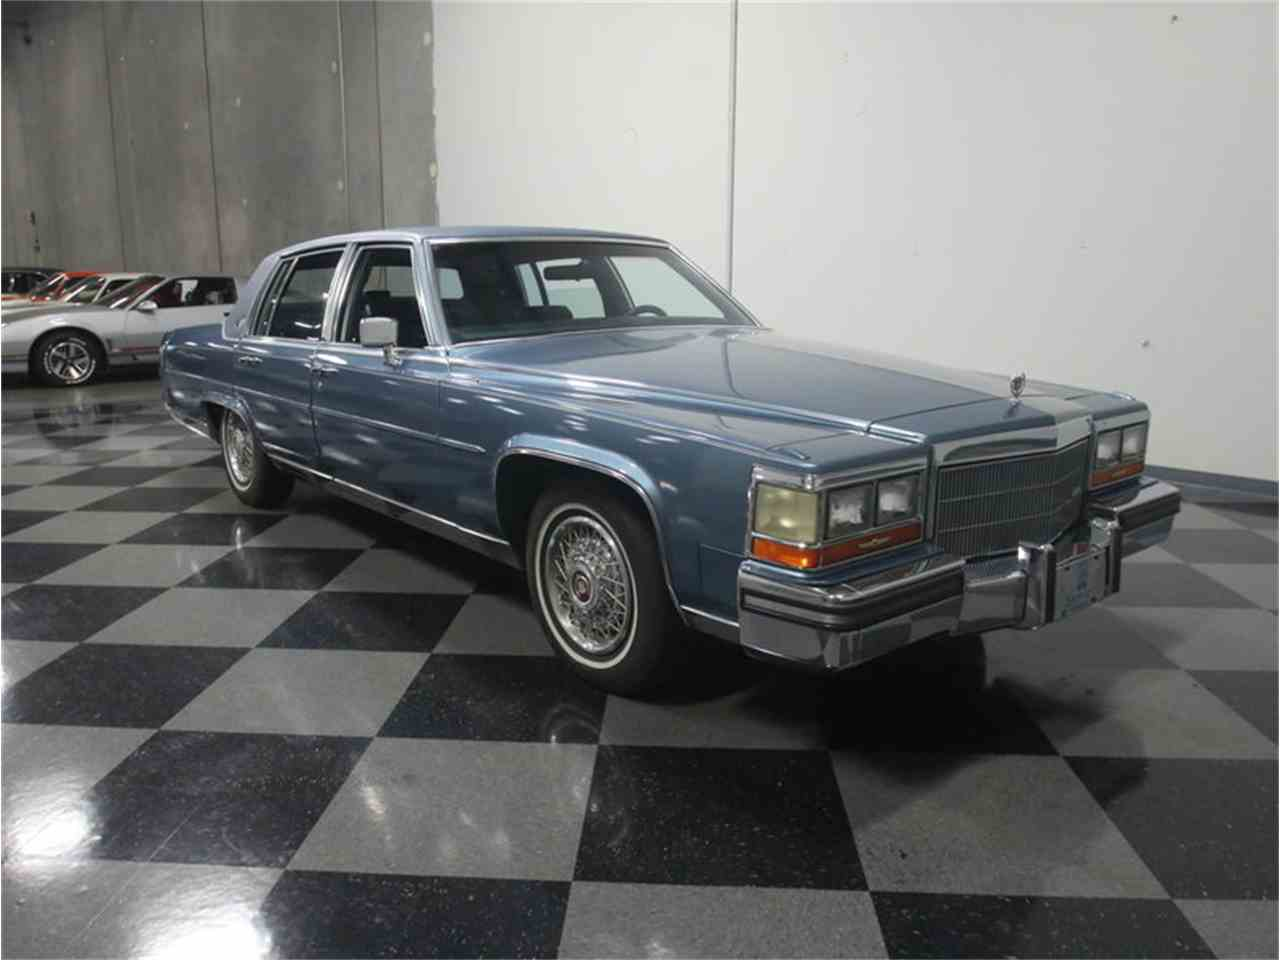 Large Picture of 1986 Cadillac Fleetwood Brougham located in Lithia Springs Georgia Offered by Streetside Classics - Atlanta - LHHW